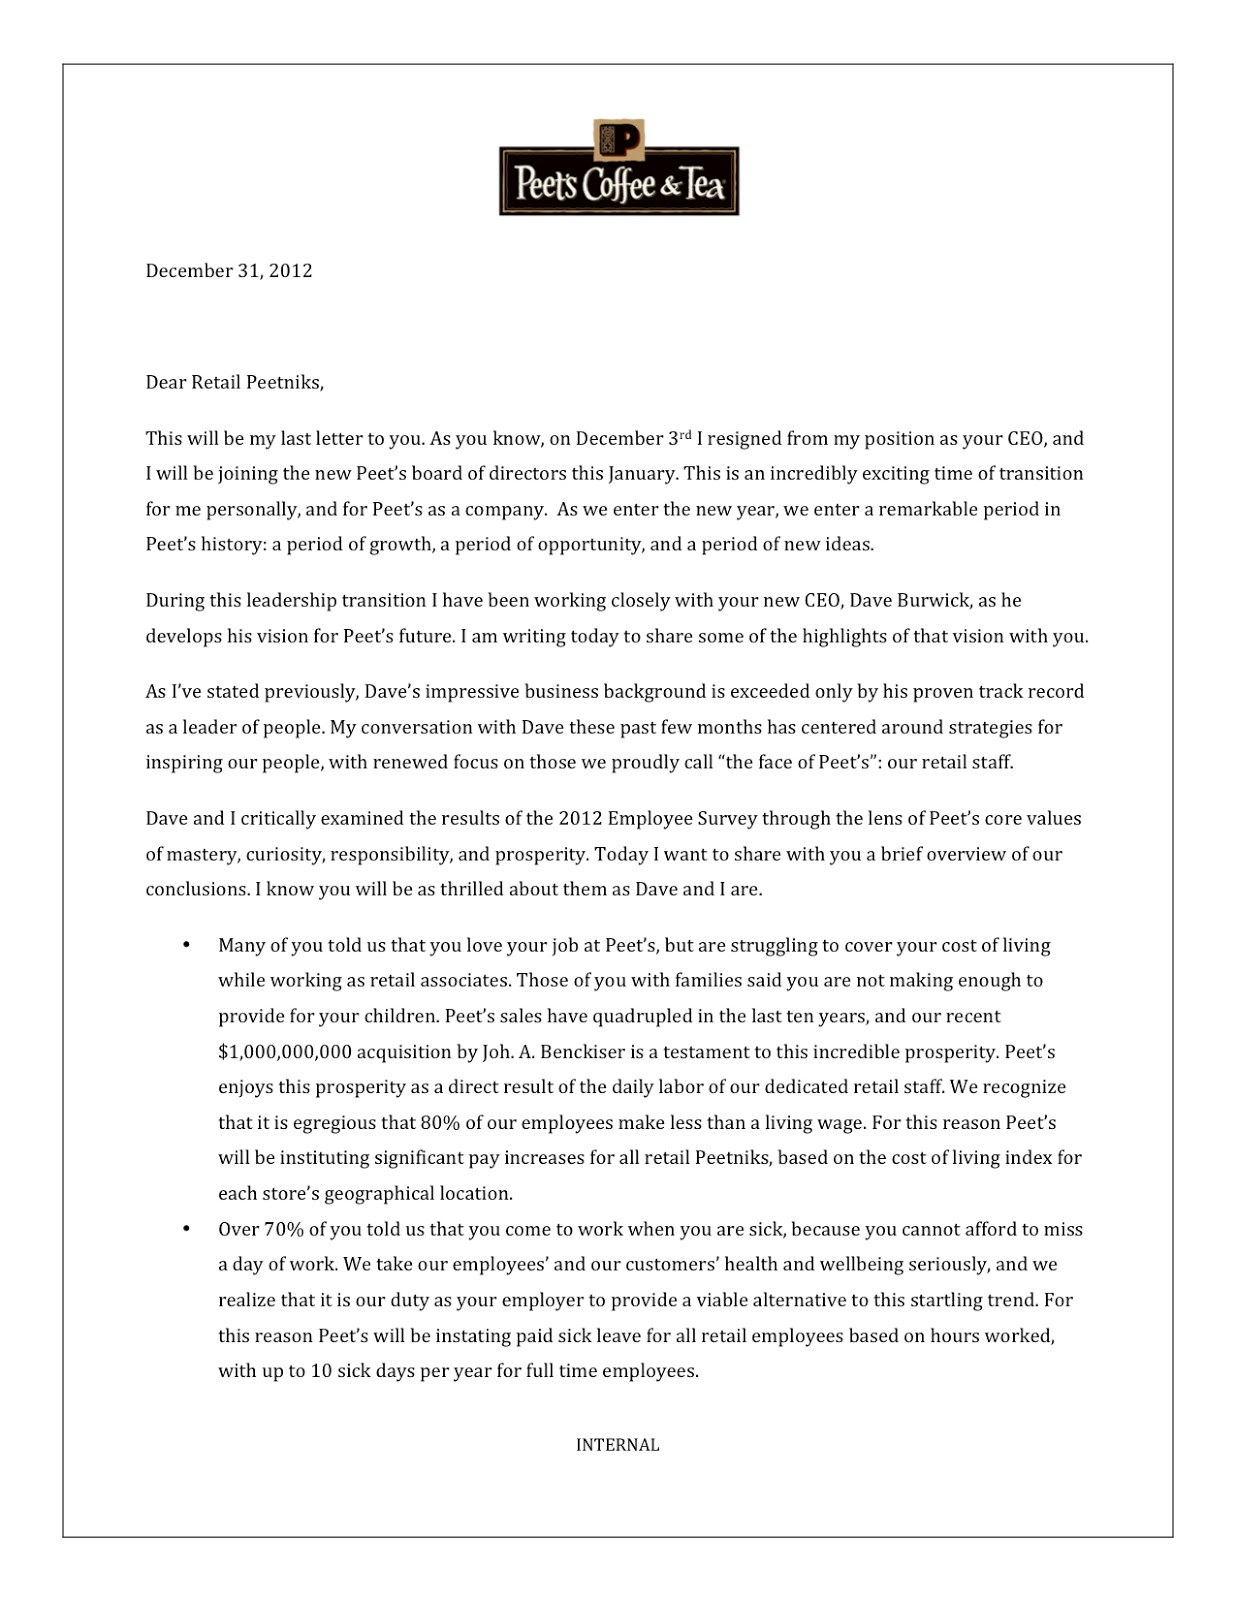 94 CHRISTMAS LETTER TO EMPLOYEES FROM CEO, LETTER CEO